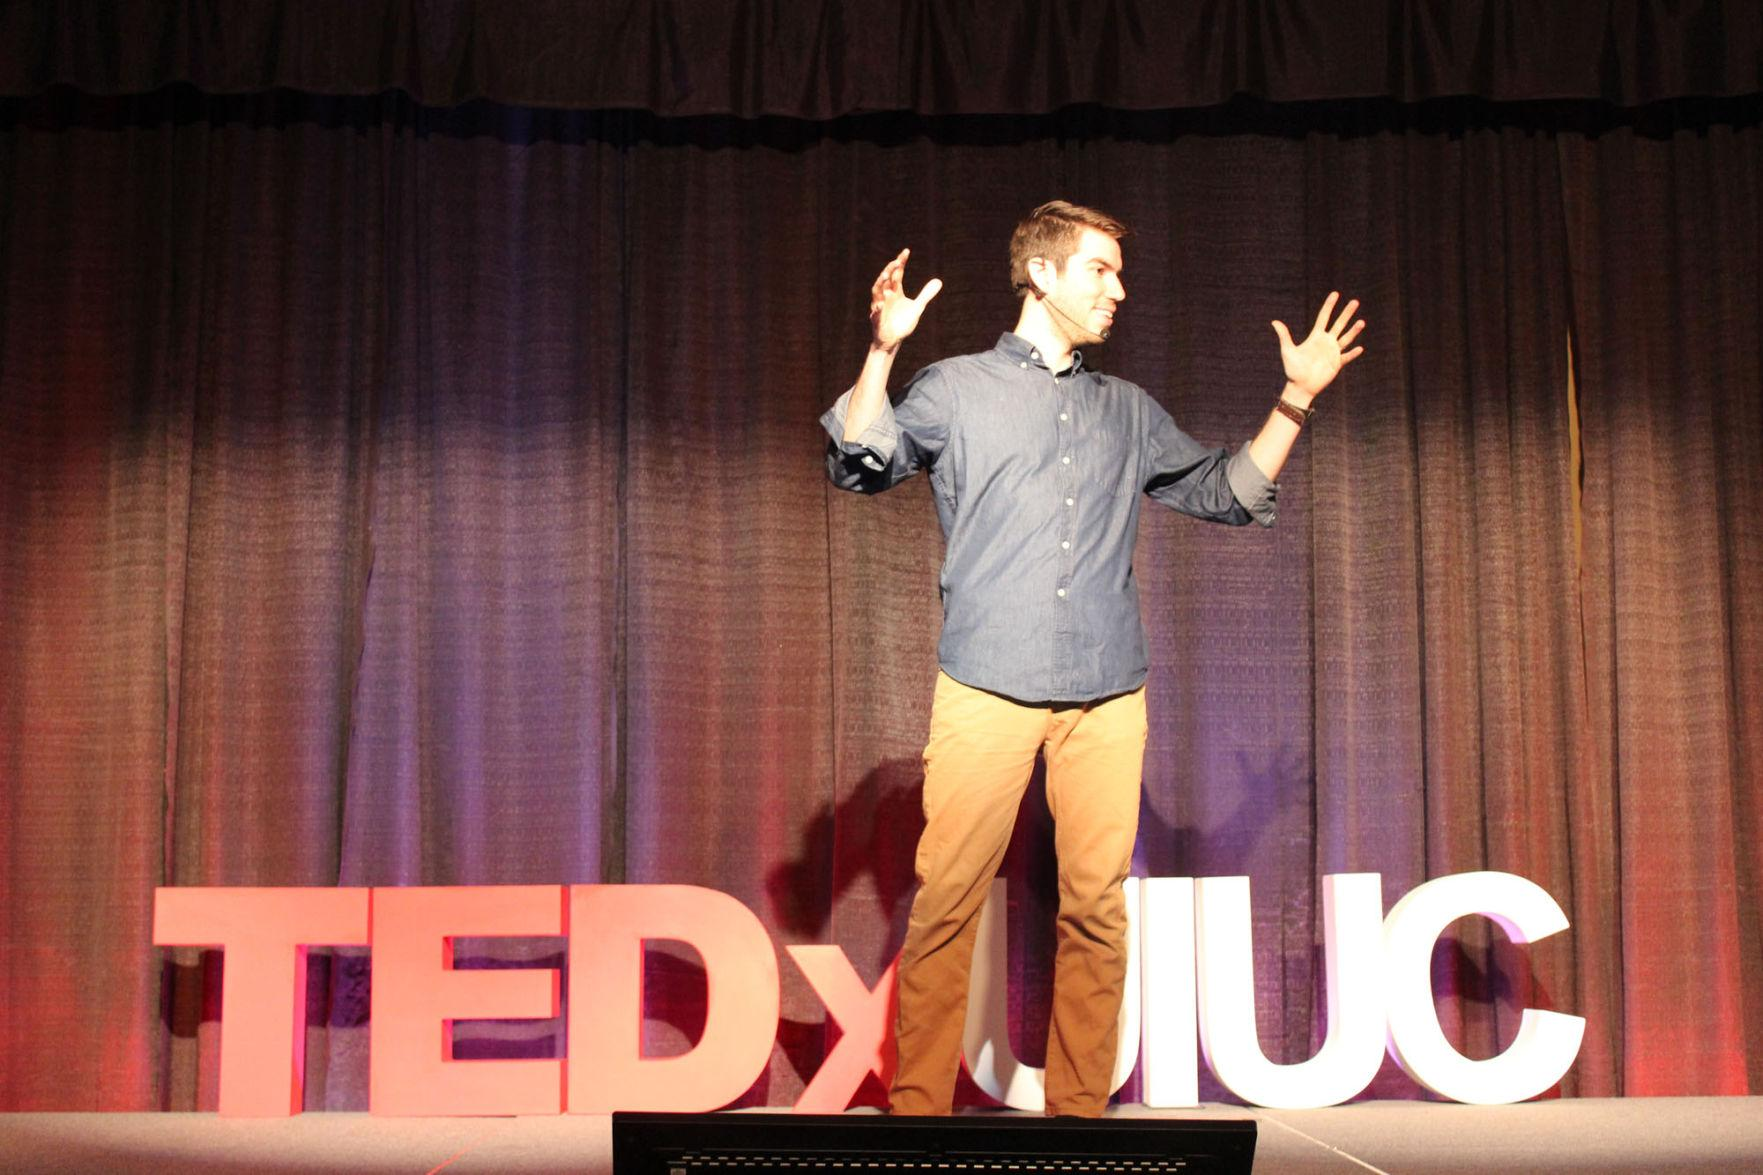 Esteban Gast, comedian and social entrepreneur, gives a presentation at the I Hotel and Conference Center during Saturday's TEDxUIUC 2015: At Crossroads event. The next TEDxUIUC event will be on April 23, with the theme